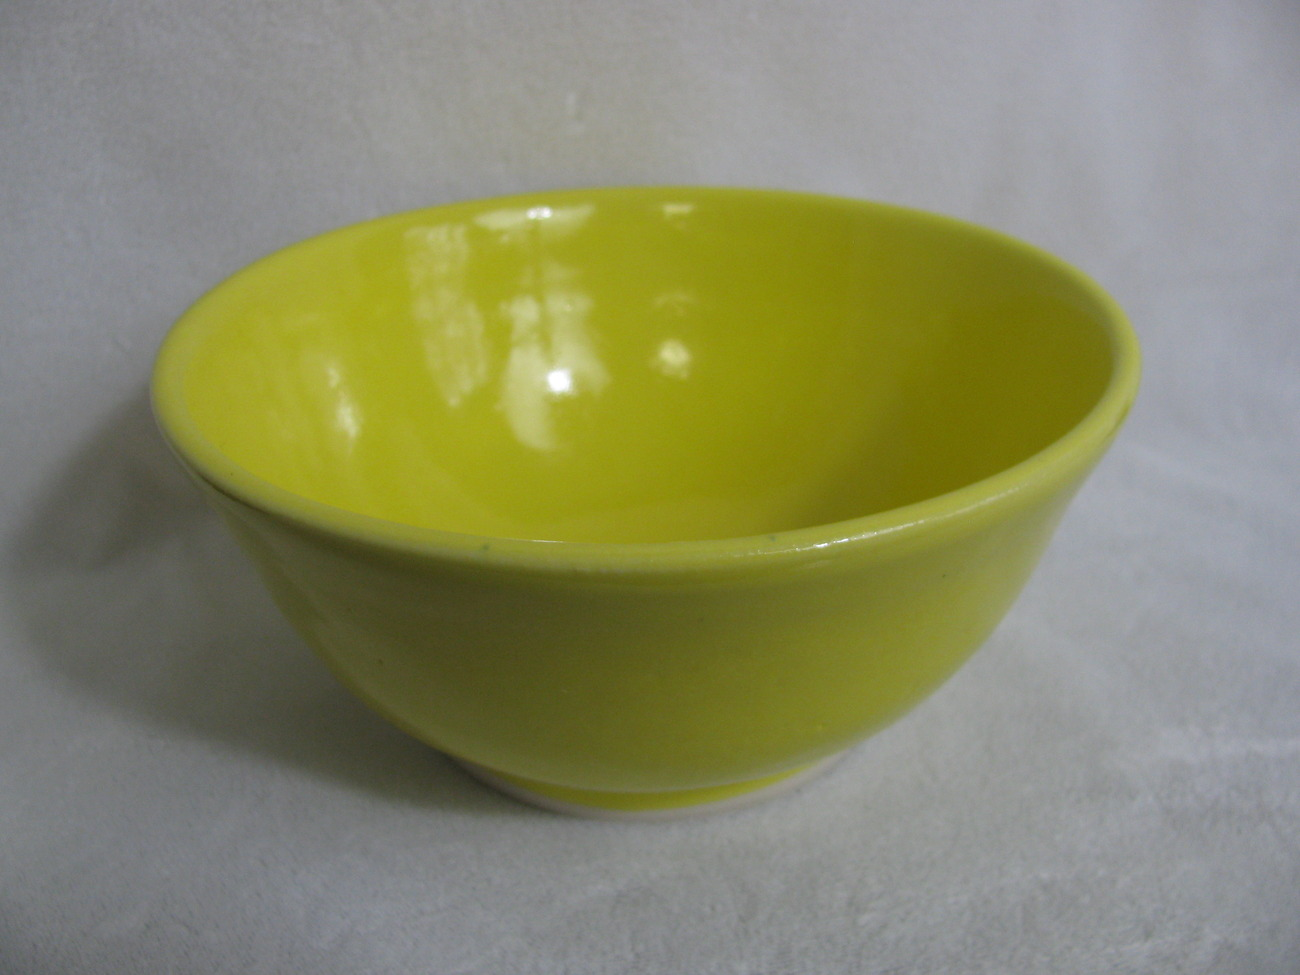 Yami Porcelain Cupping Bowl Yellow Blue Screaming 6 Cup Rkc110 Studio